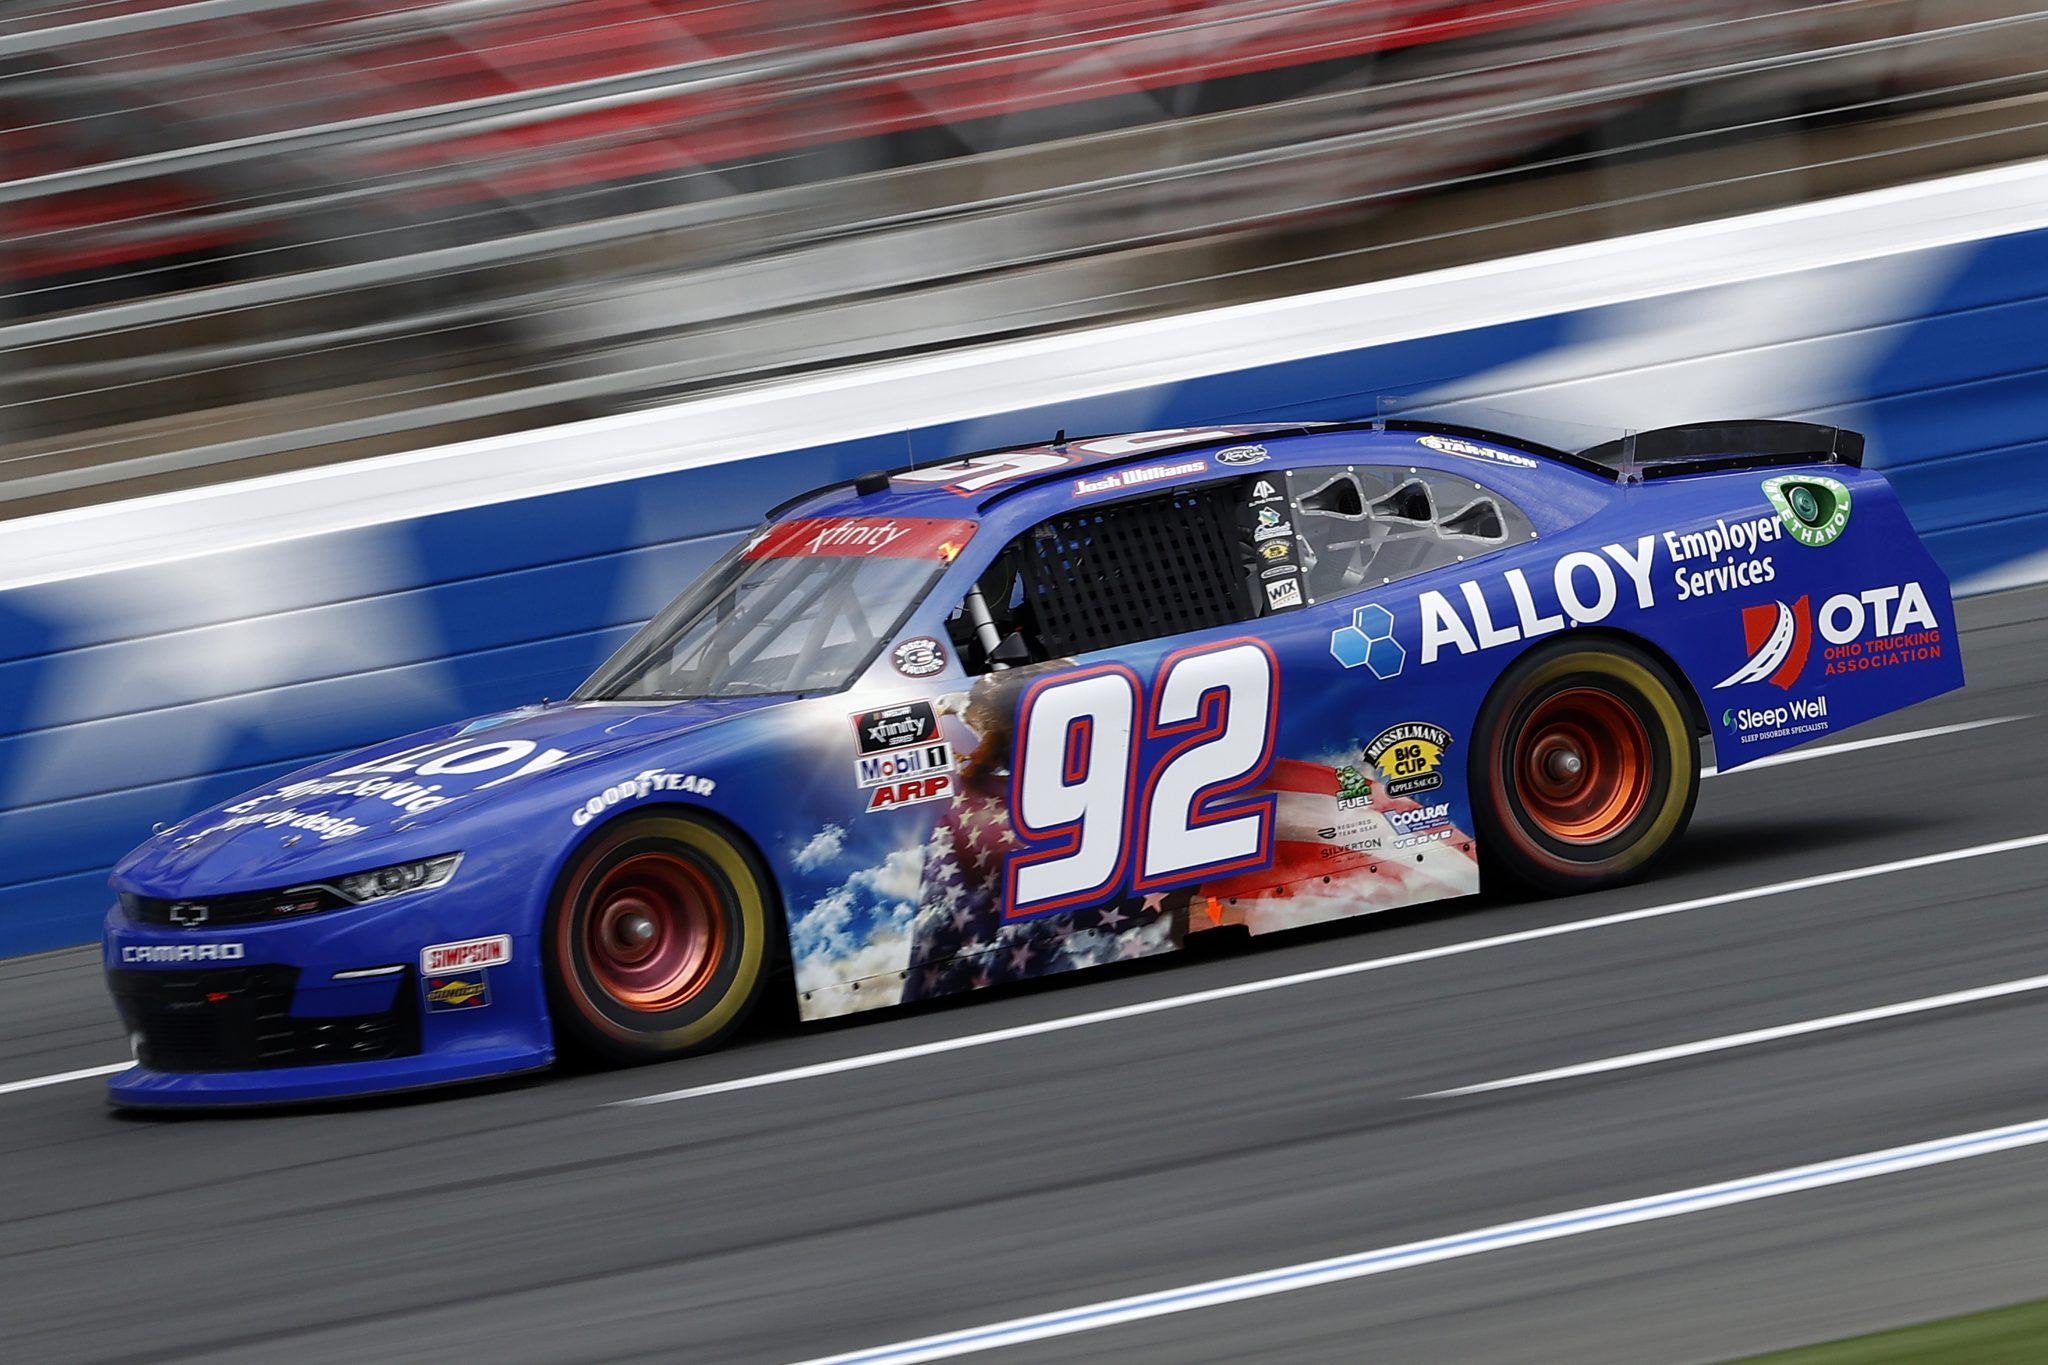 CONCORD, NORTH CAROLINA - MAY 28: Josh Williams, driver of the #92 Alloy Employer Services Chevrolet, drives during practice for the NASCAR Xfinity Series Alsco Uniforms 300 at Charlotte Motor Speedway on May 28, 2021 in Concord, North Carolina. (Photo by Maddie Meyer/Getty Images)   Getty Images